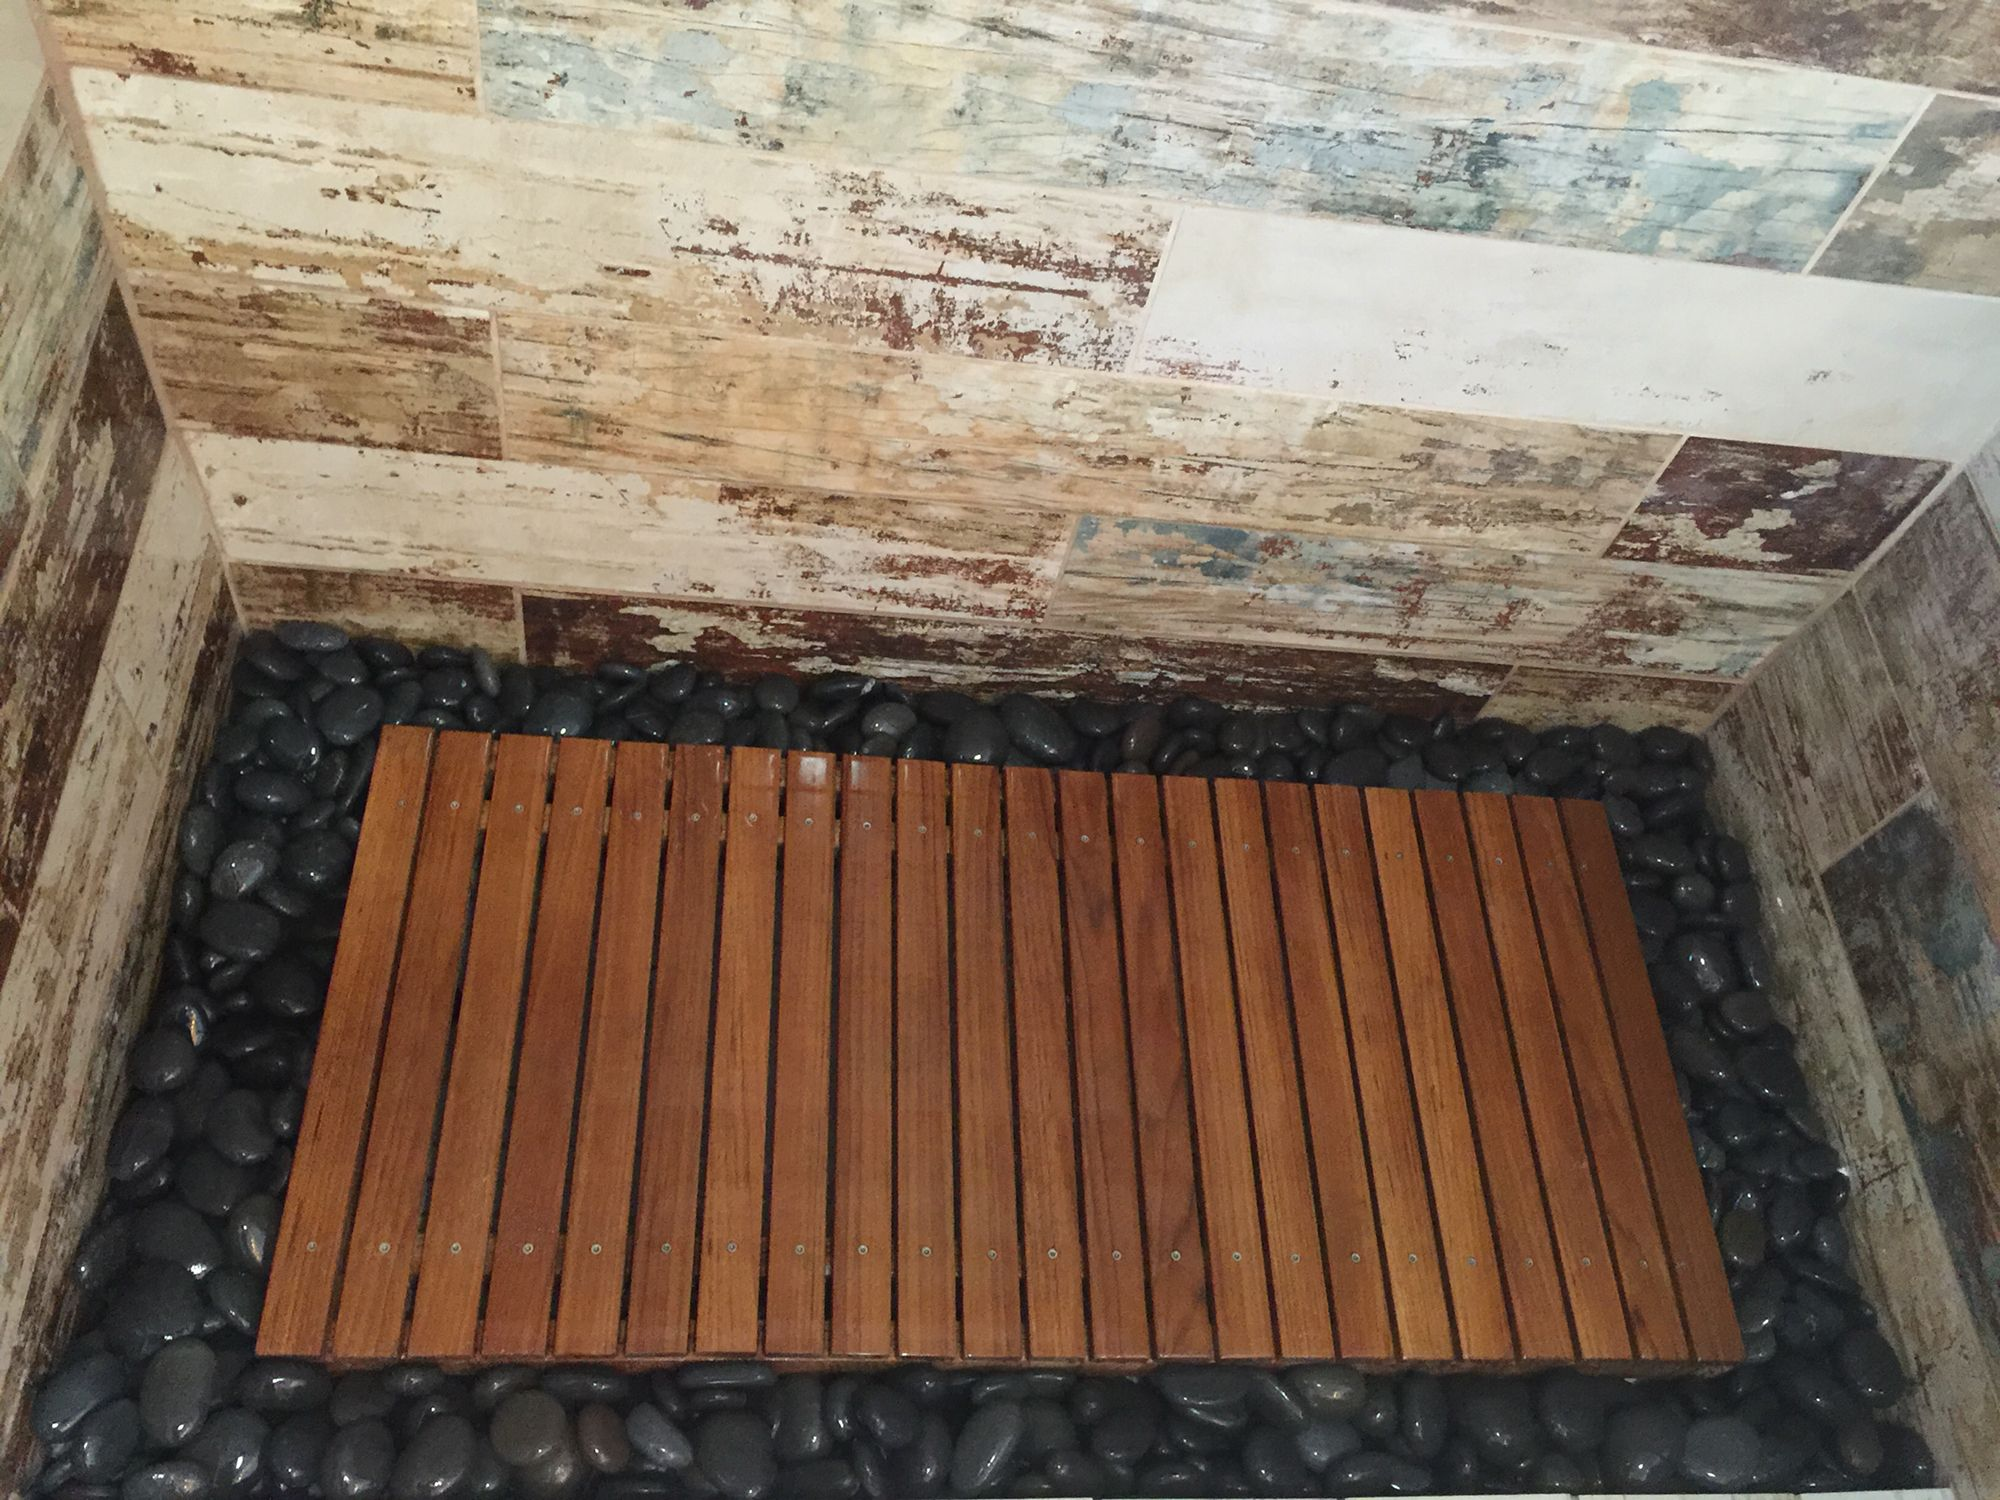 Teak wood shower floor surrounded by river rock walls tiles in ceramic bar wood tile designed by krysten petersen of wtbh llc st pete florida